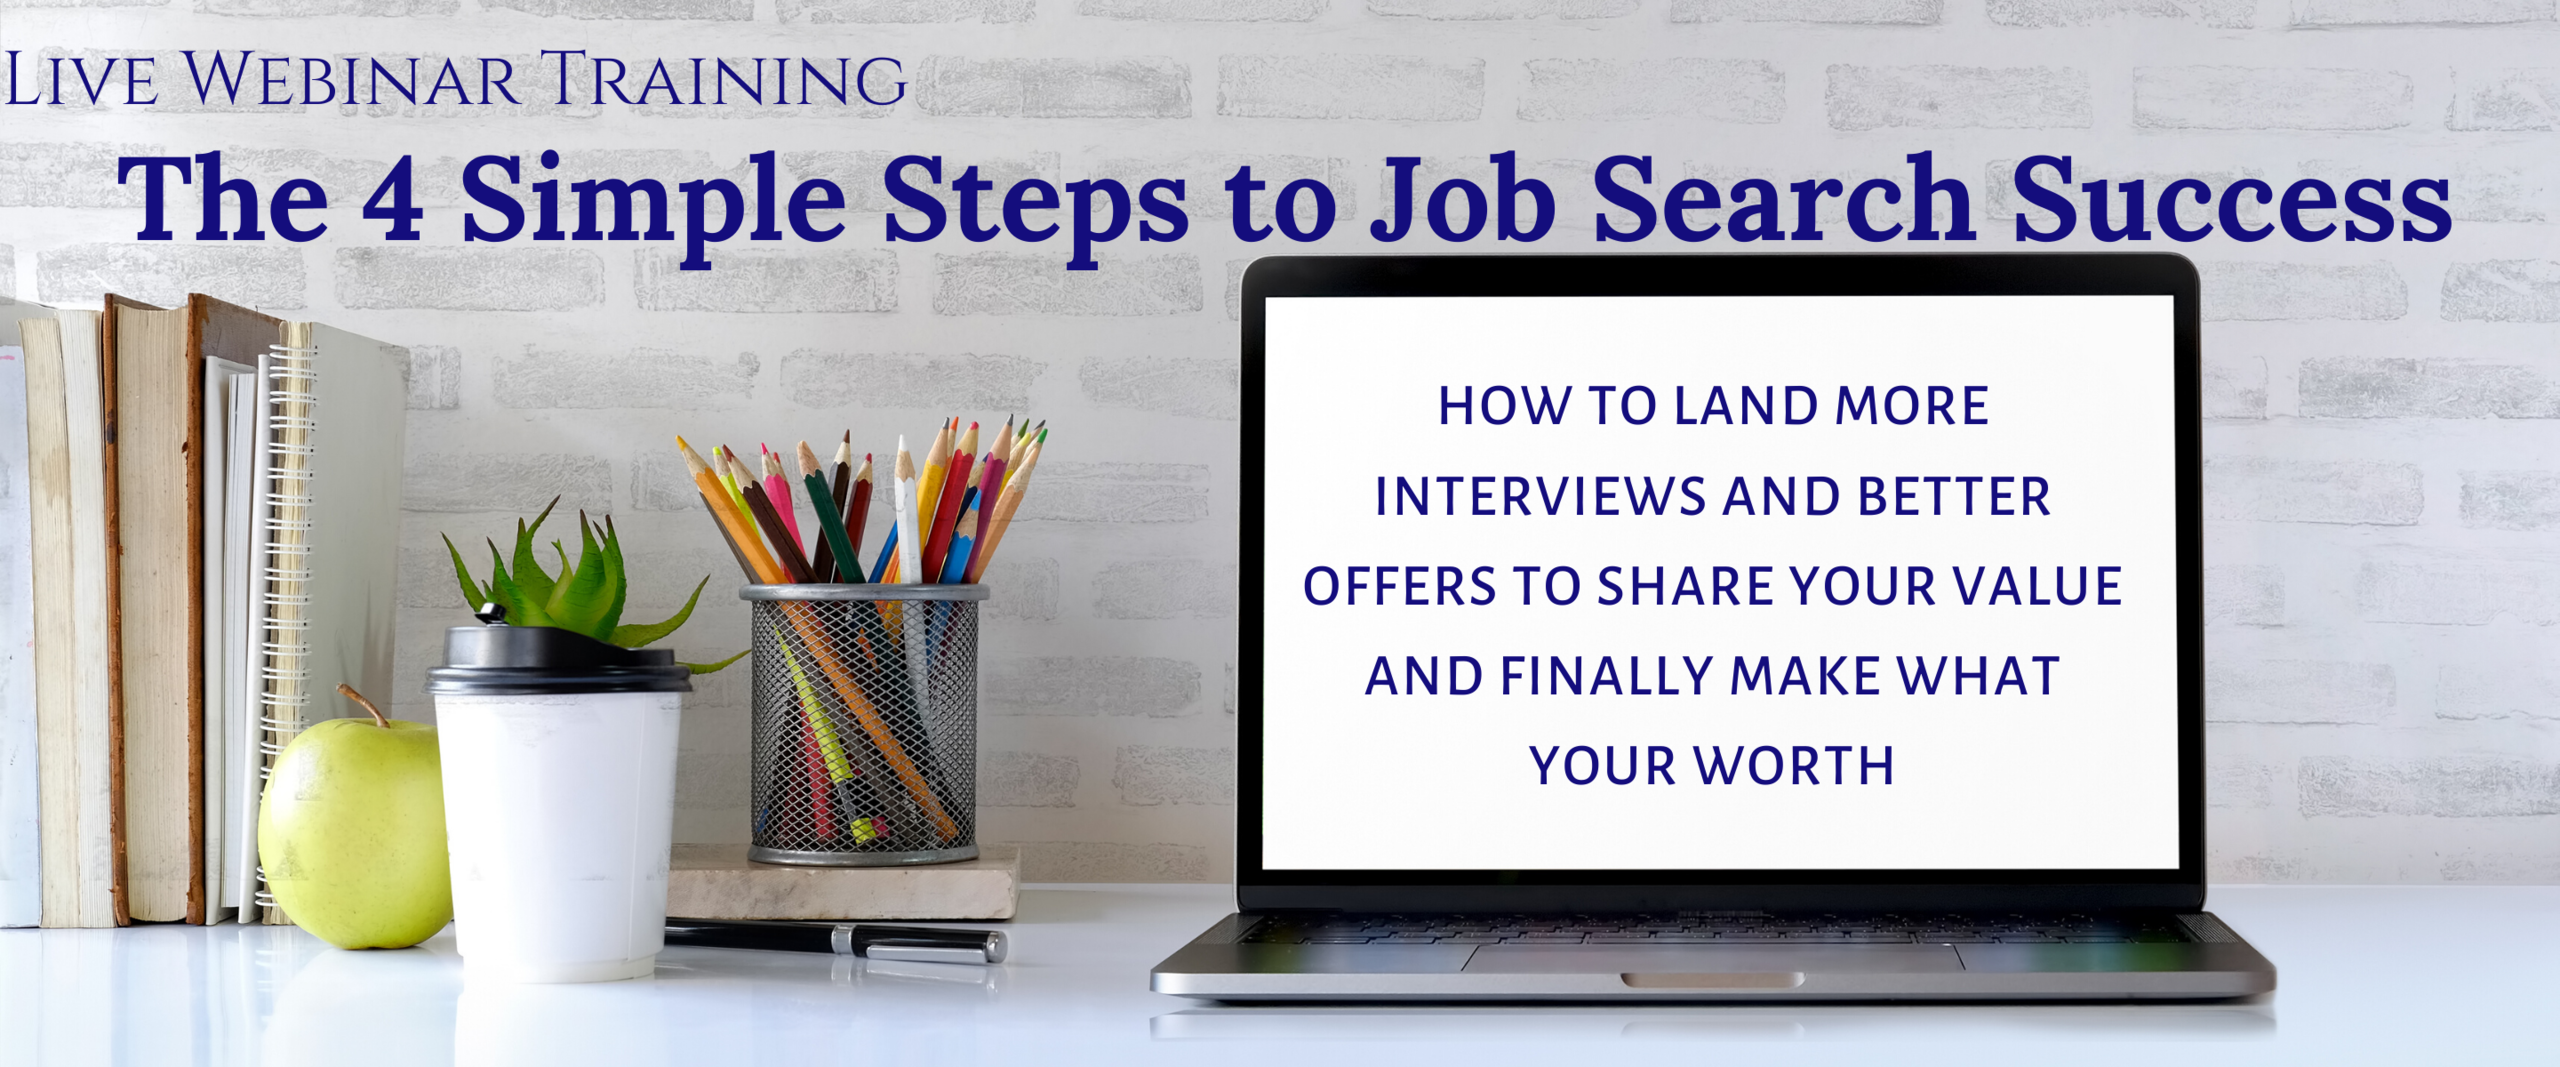 4 simple steps to job search success